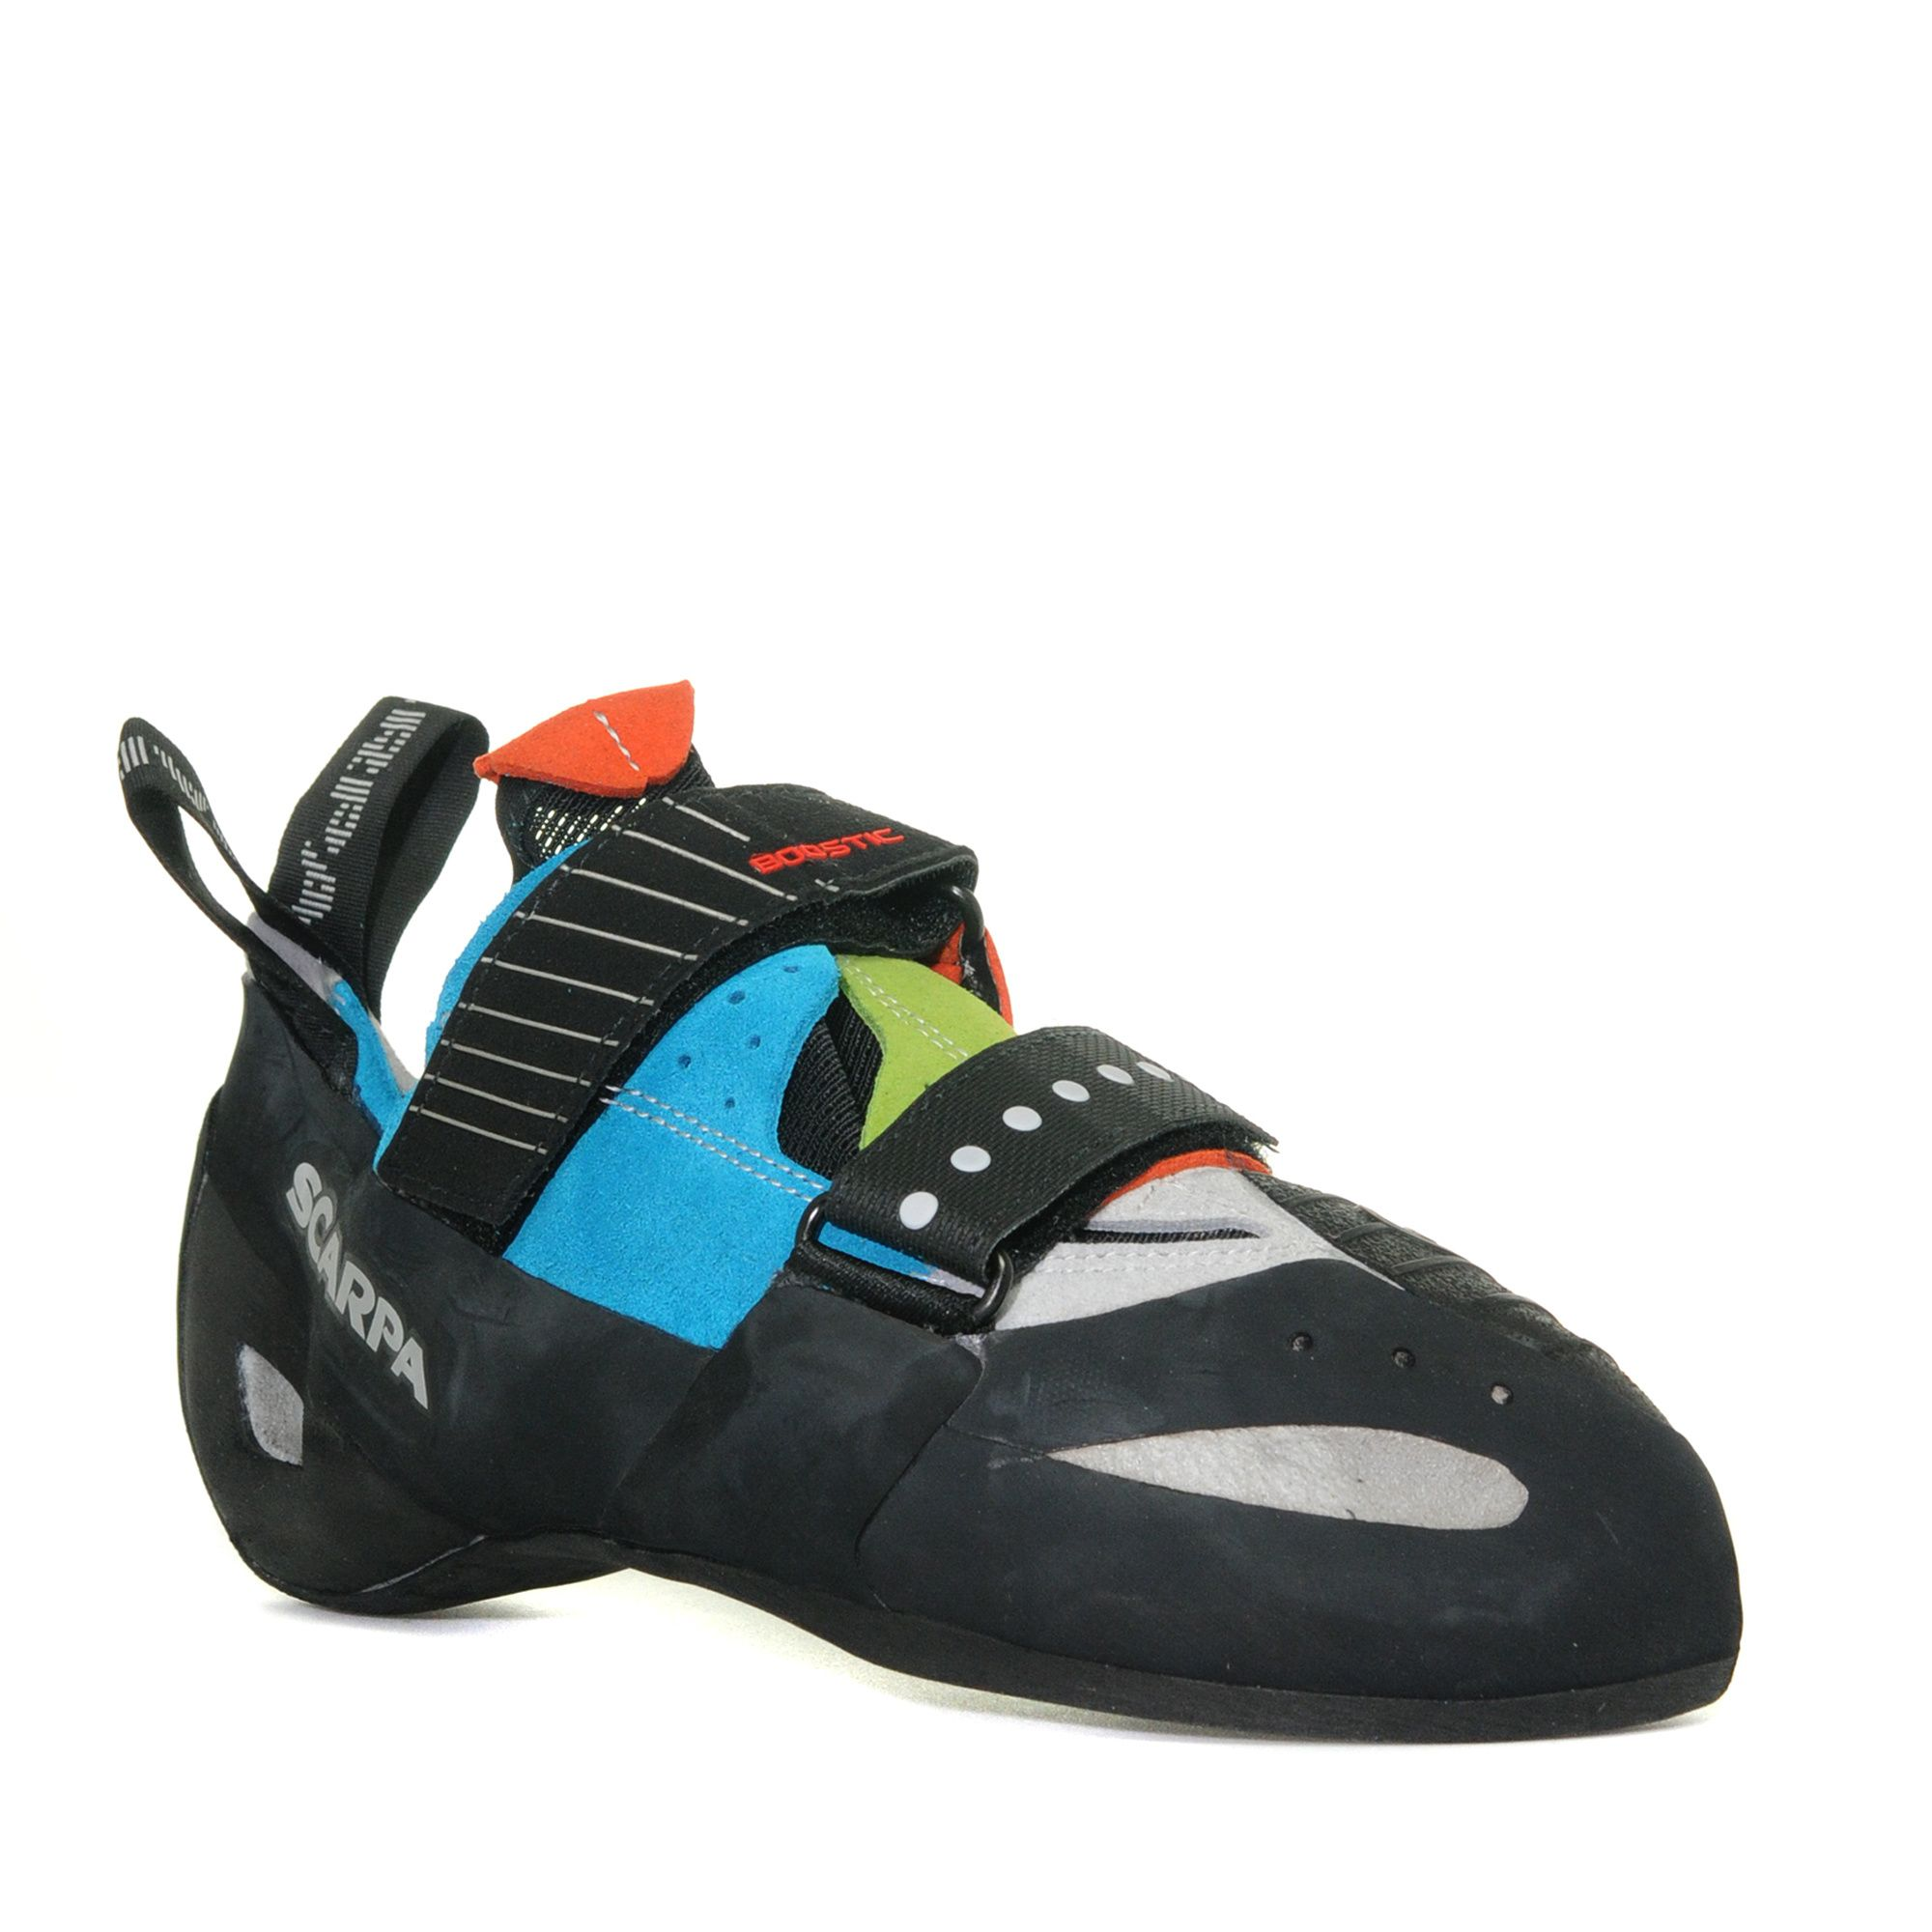 SCARPA Men's Boostic Climbing Shoe